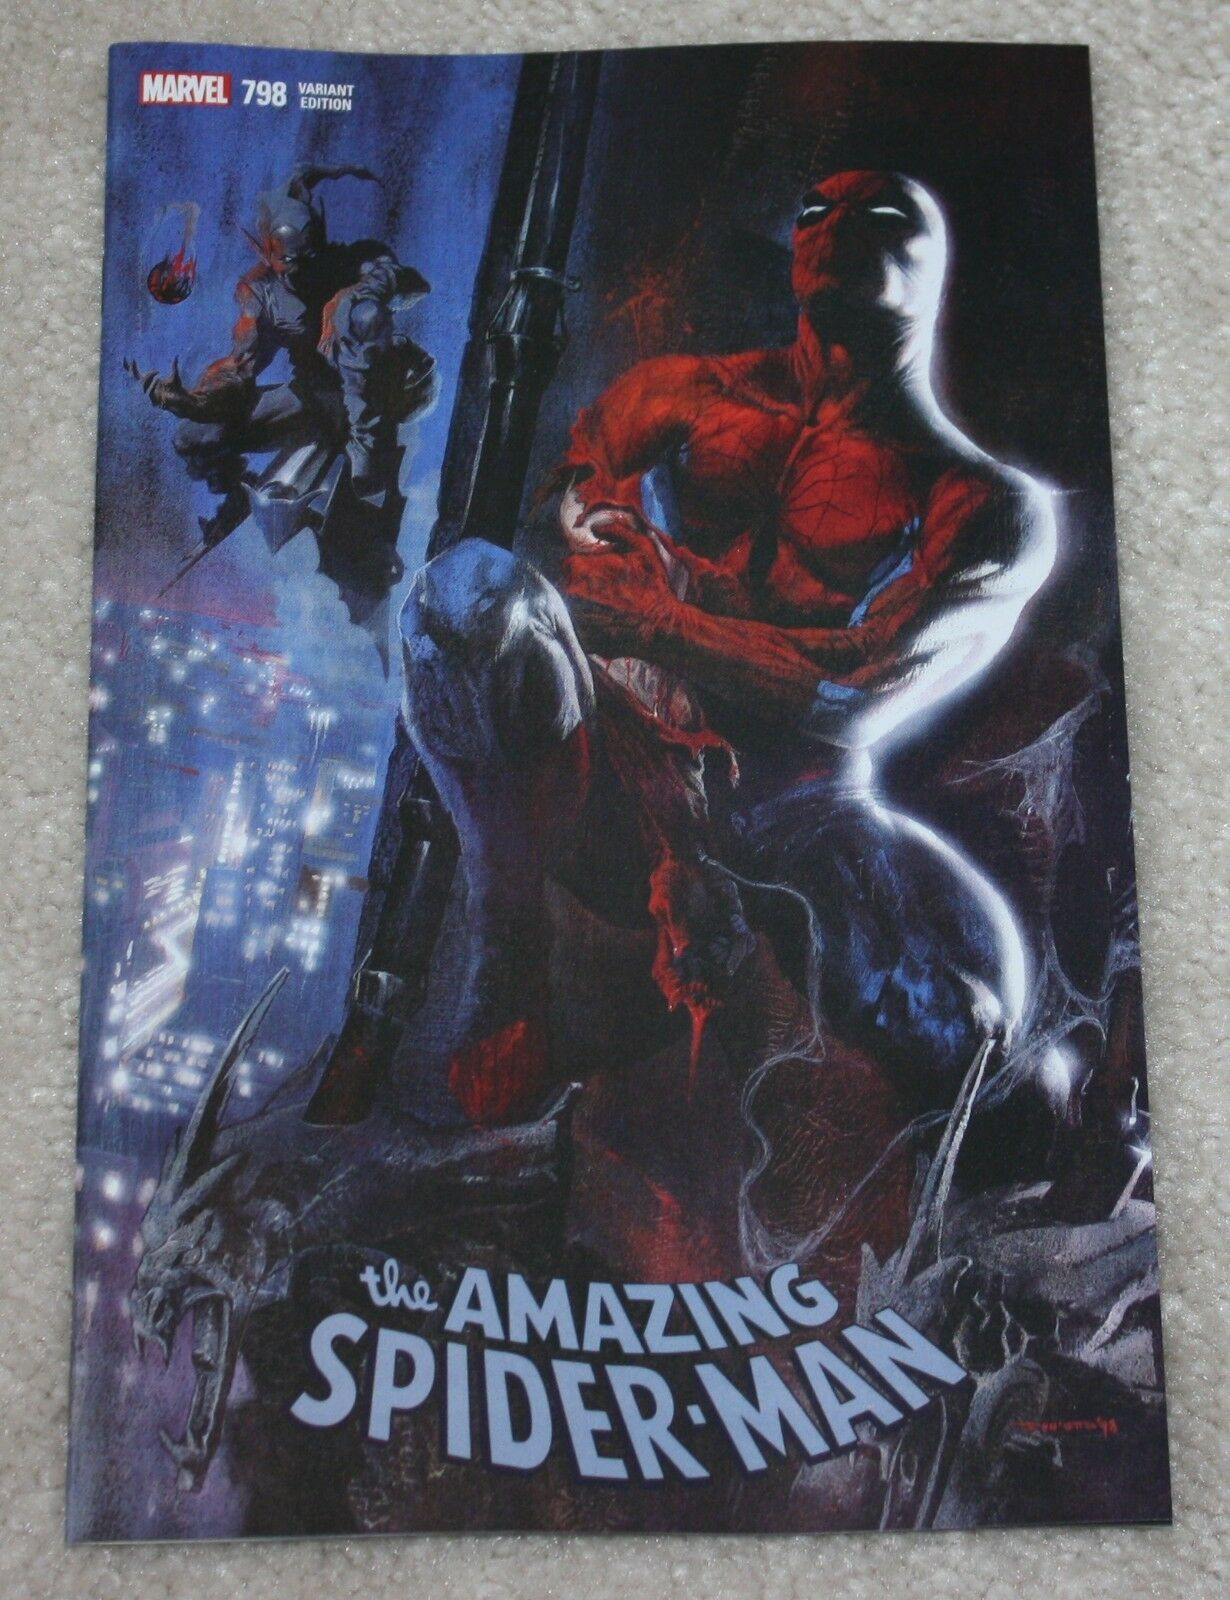 AMAZING SPIDER-MAN #798 GABRIELLE DELL OTTO LOGO EXCLUSIVE VARIANT 1st RED GOBLIN